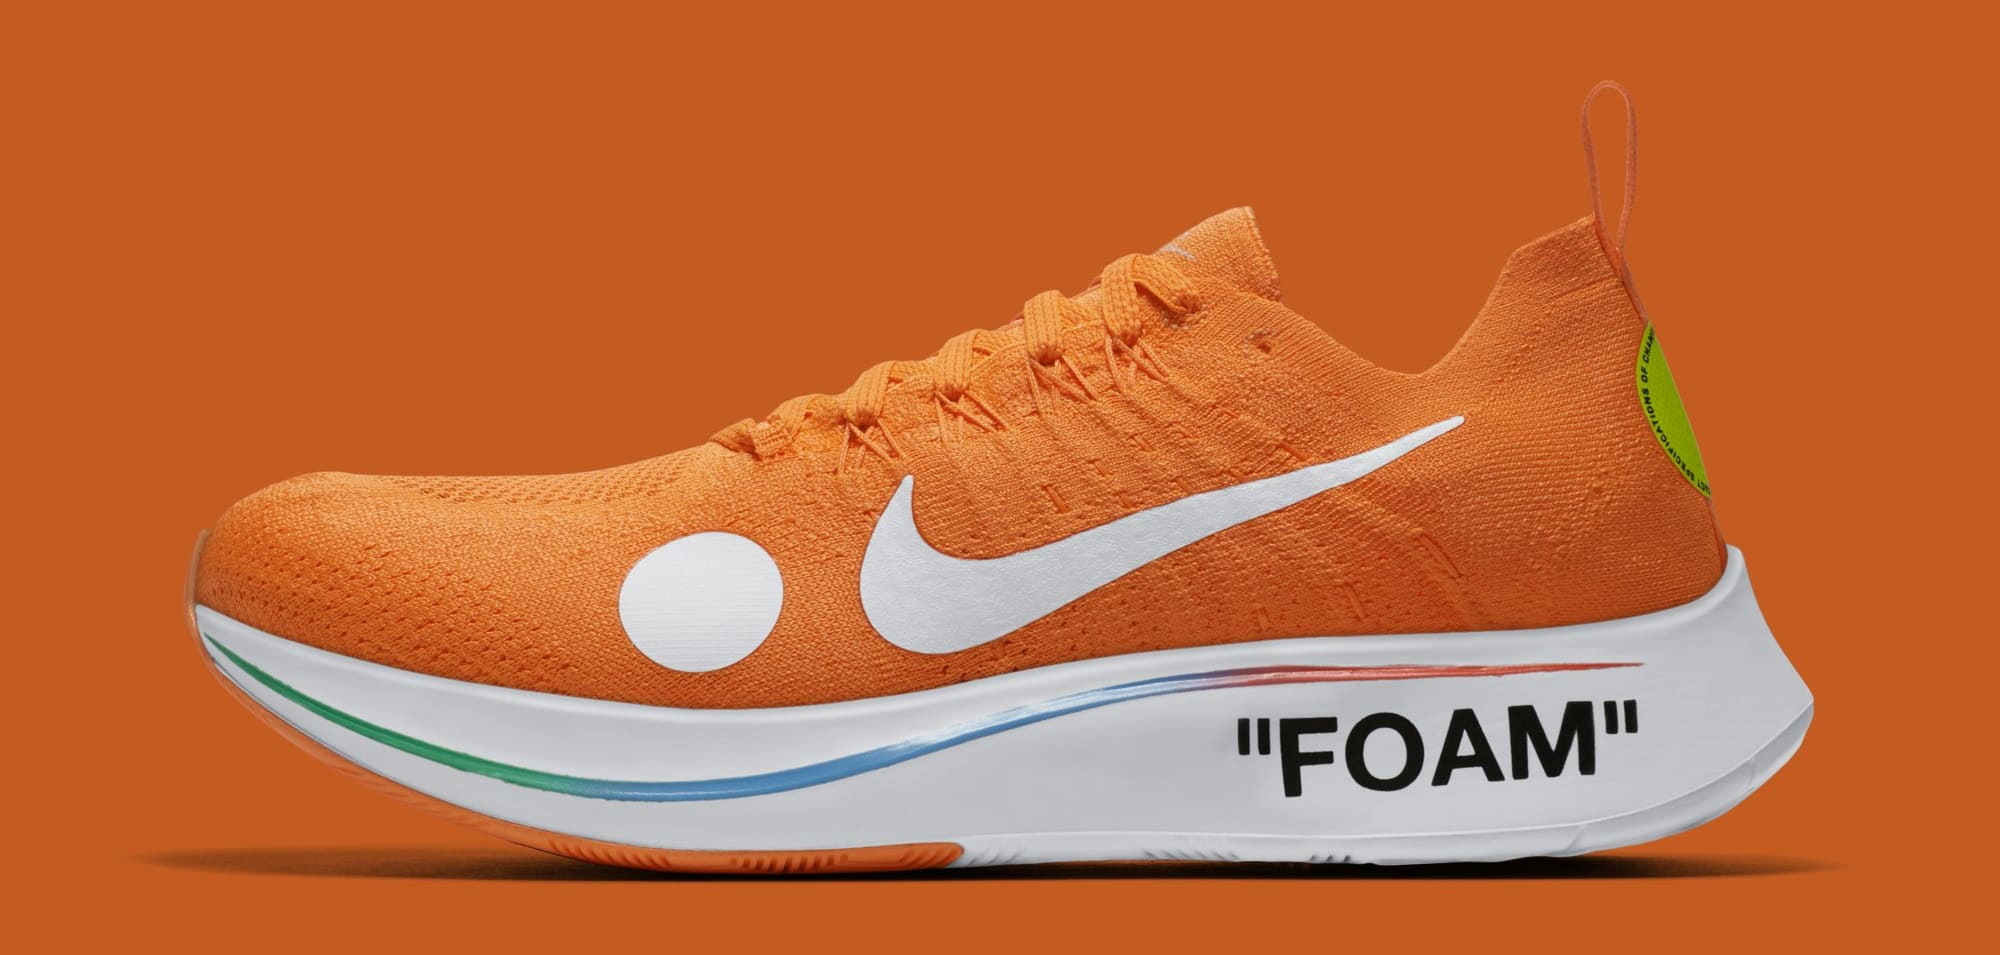 Off-White x Nike Zoom Fly Mercurial Flyknit 'Total Orange' AO2115-800 (Lateral)